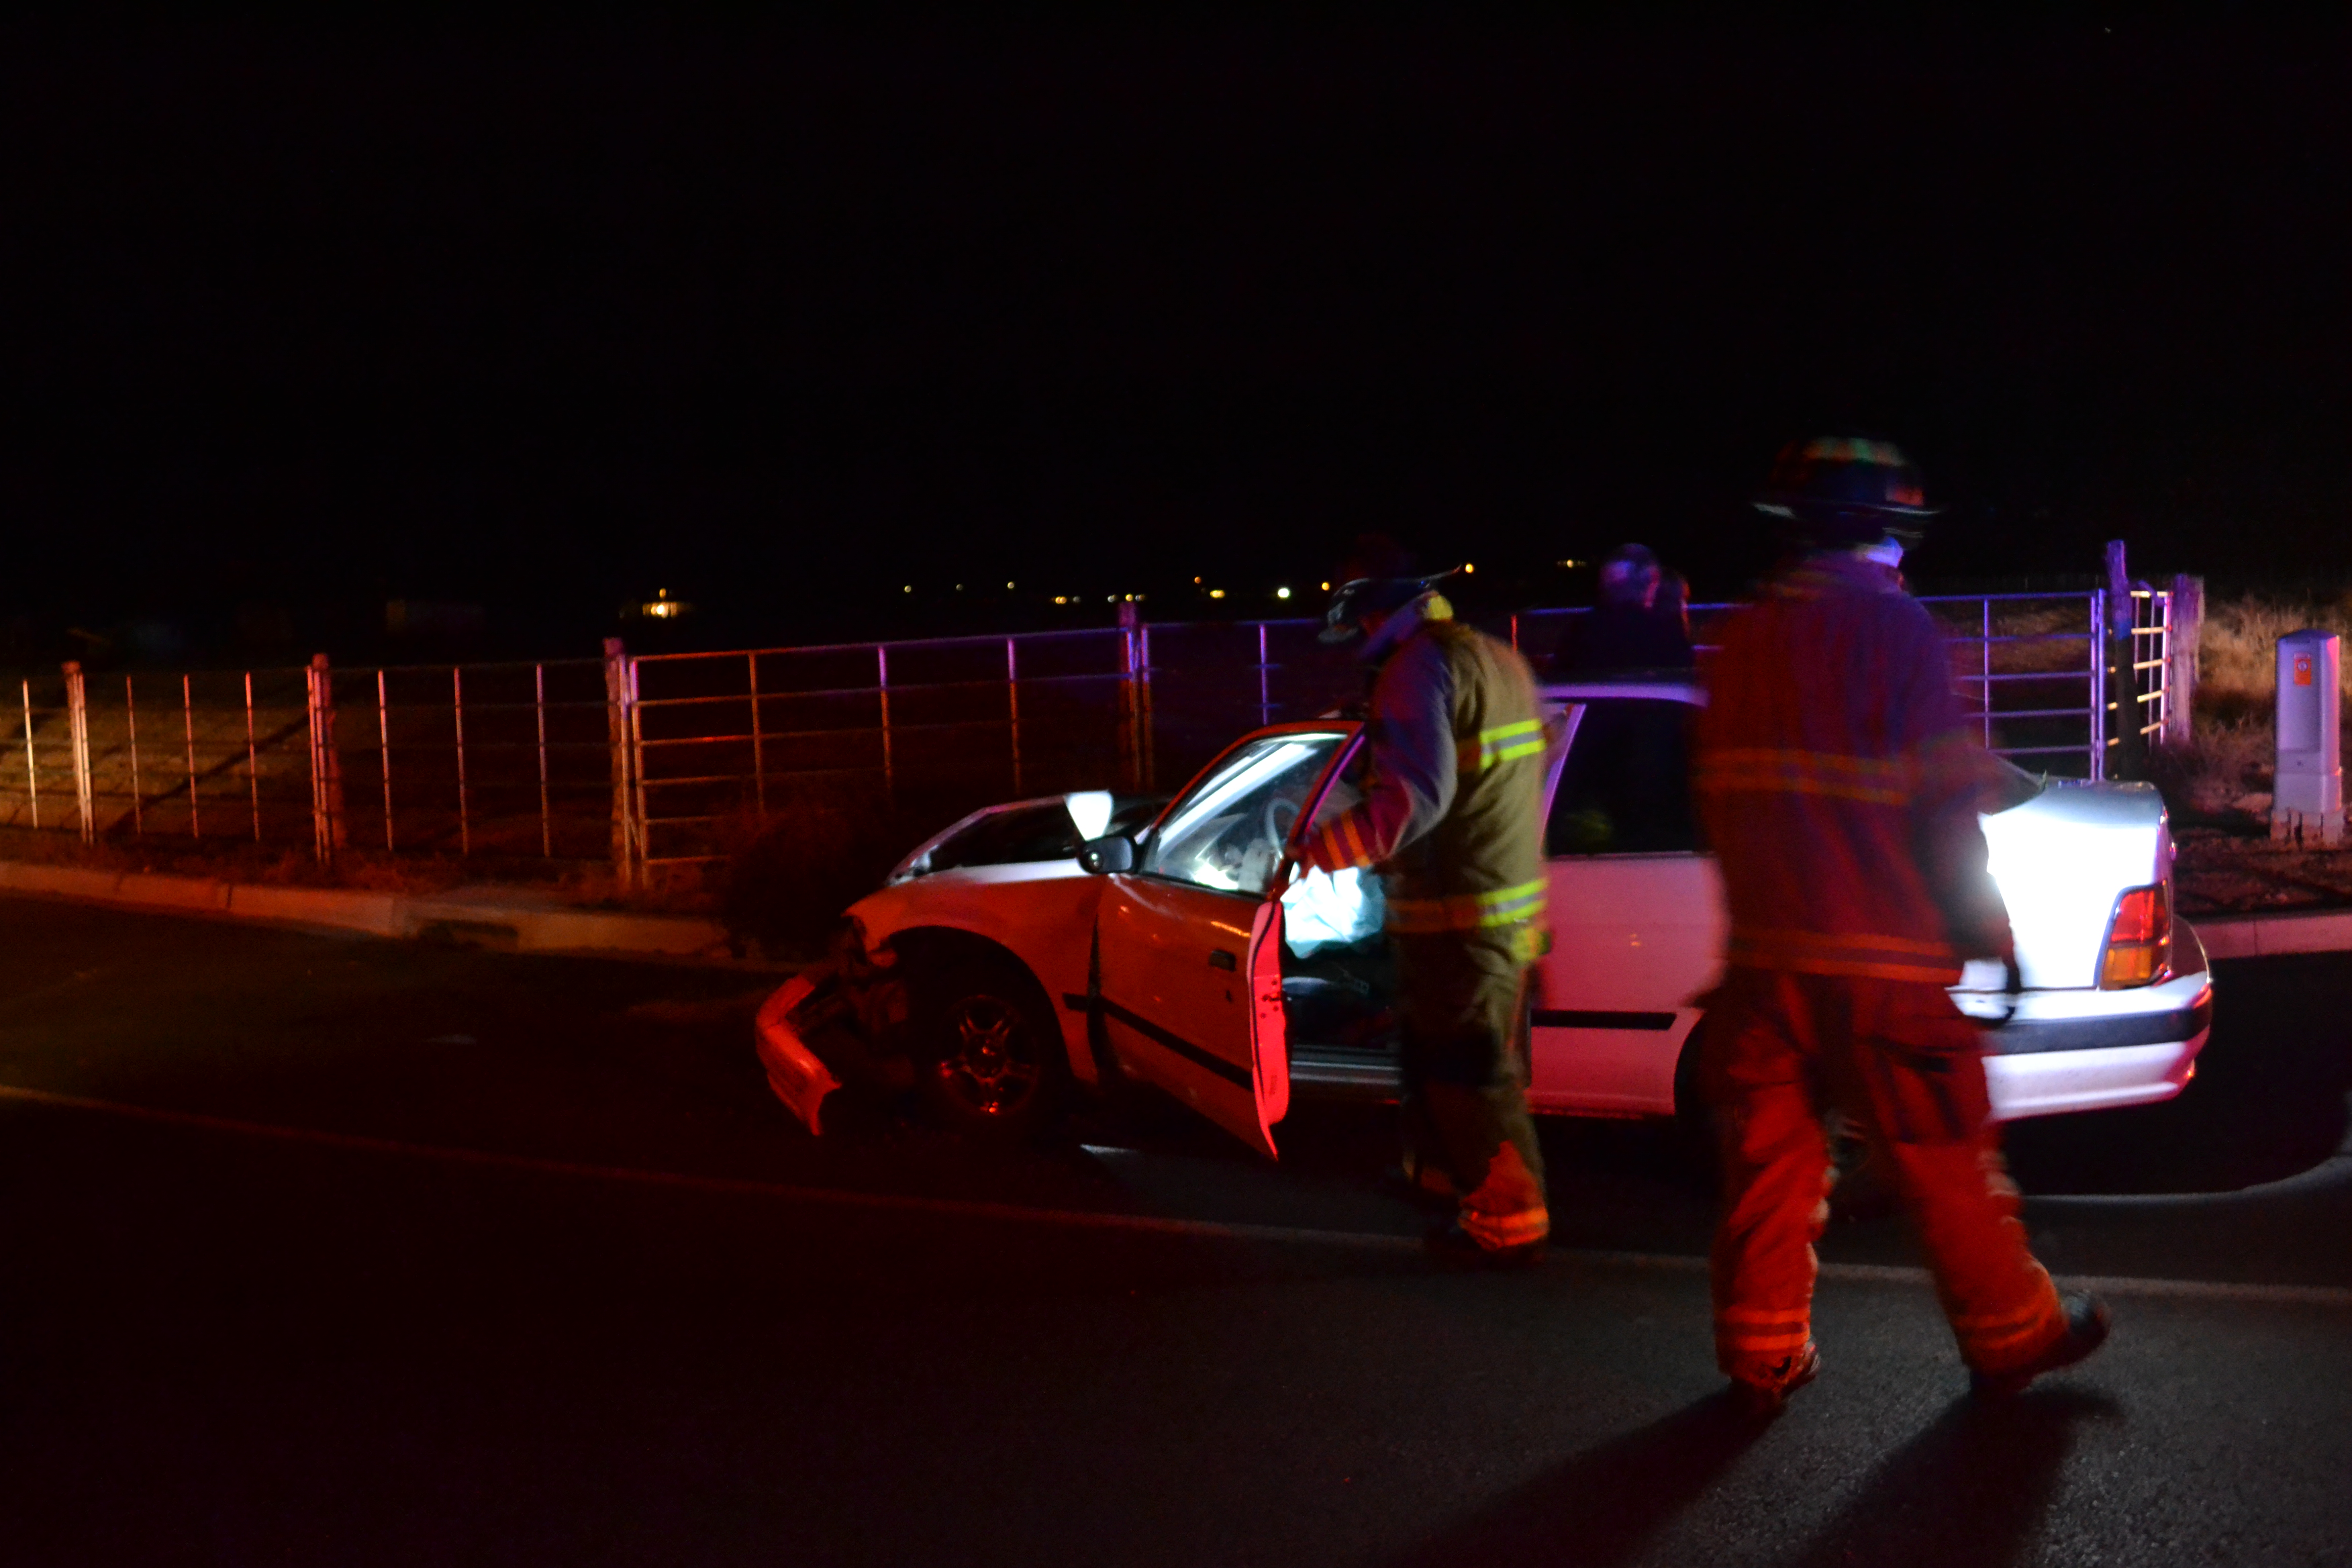 Emergency personnel from Washington Fire prepare to push a car to the side of the road after a collision at the intersection of Washington Fields Road and 3650 South, Washington City, Utah, Dec. 2, 2016 | Photo by Joseph Witham, St. George News